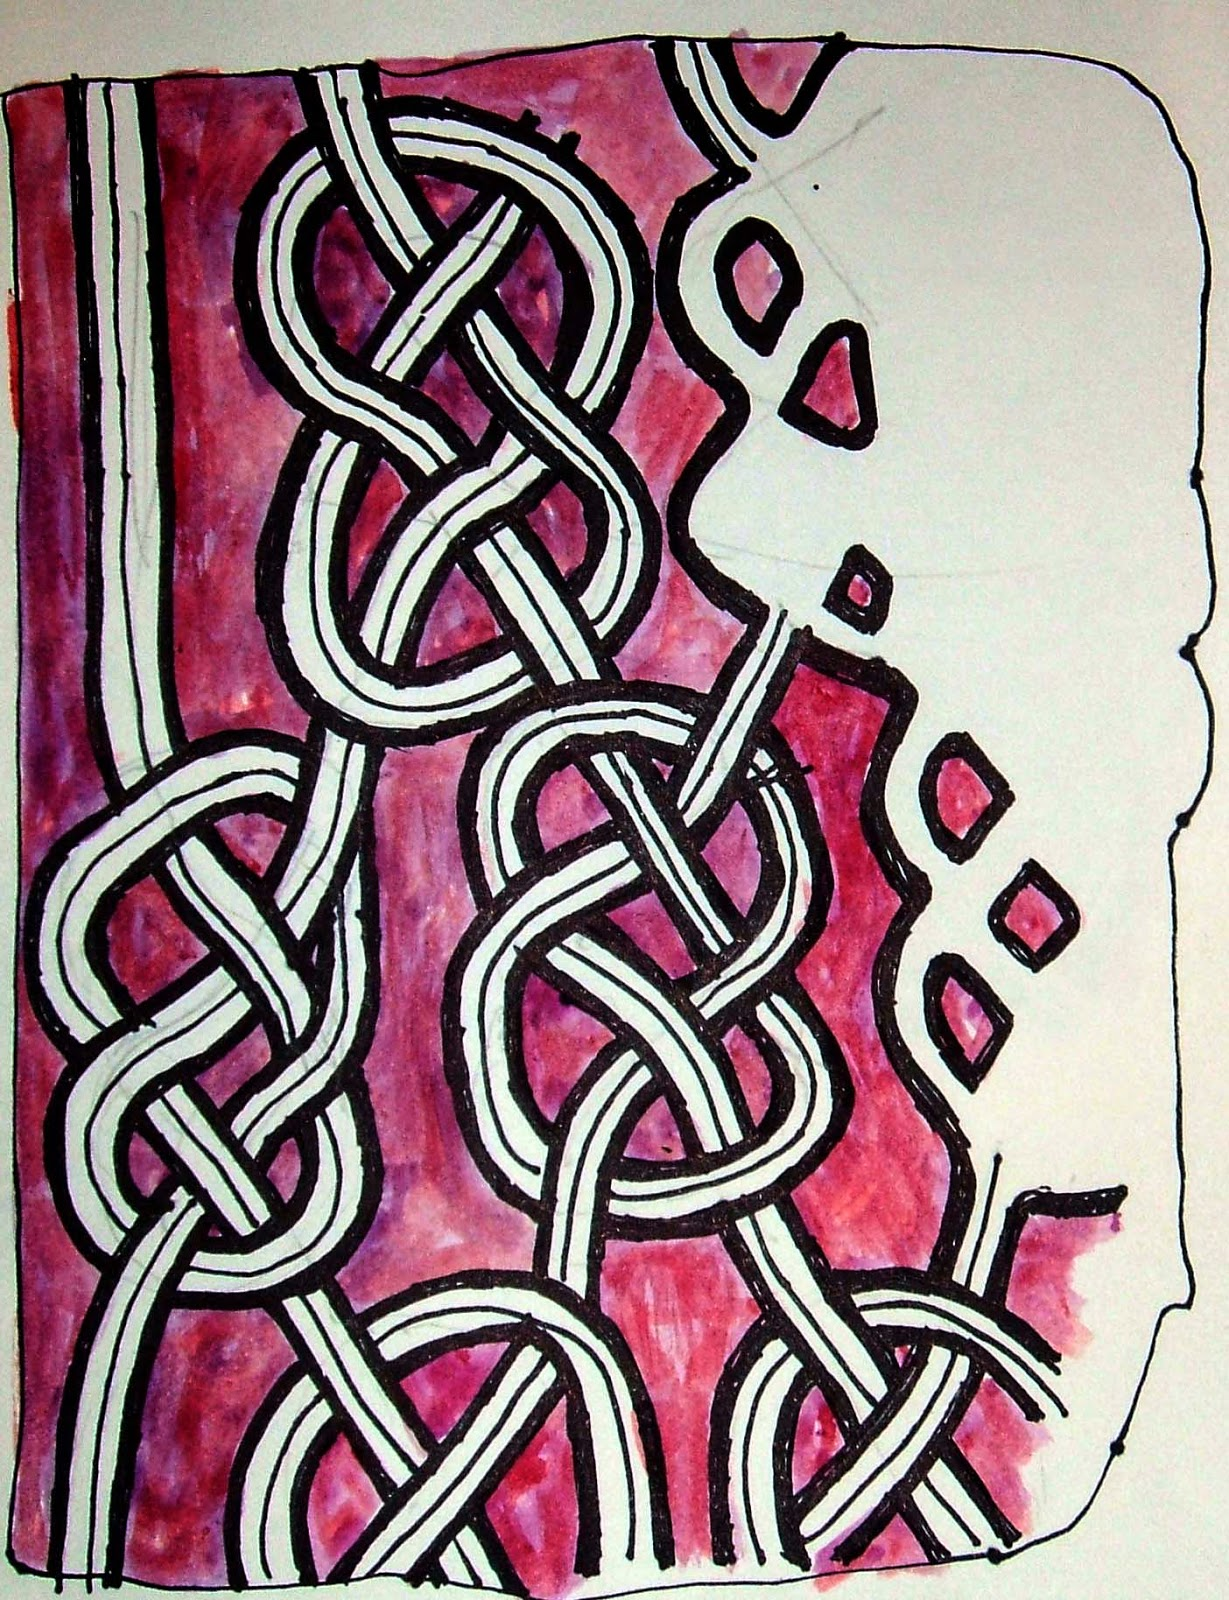 My pen and watercolour sketch based on the smaller knotwork.